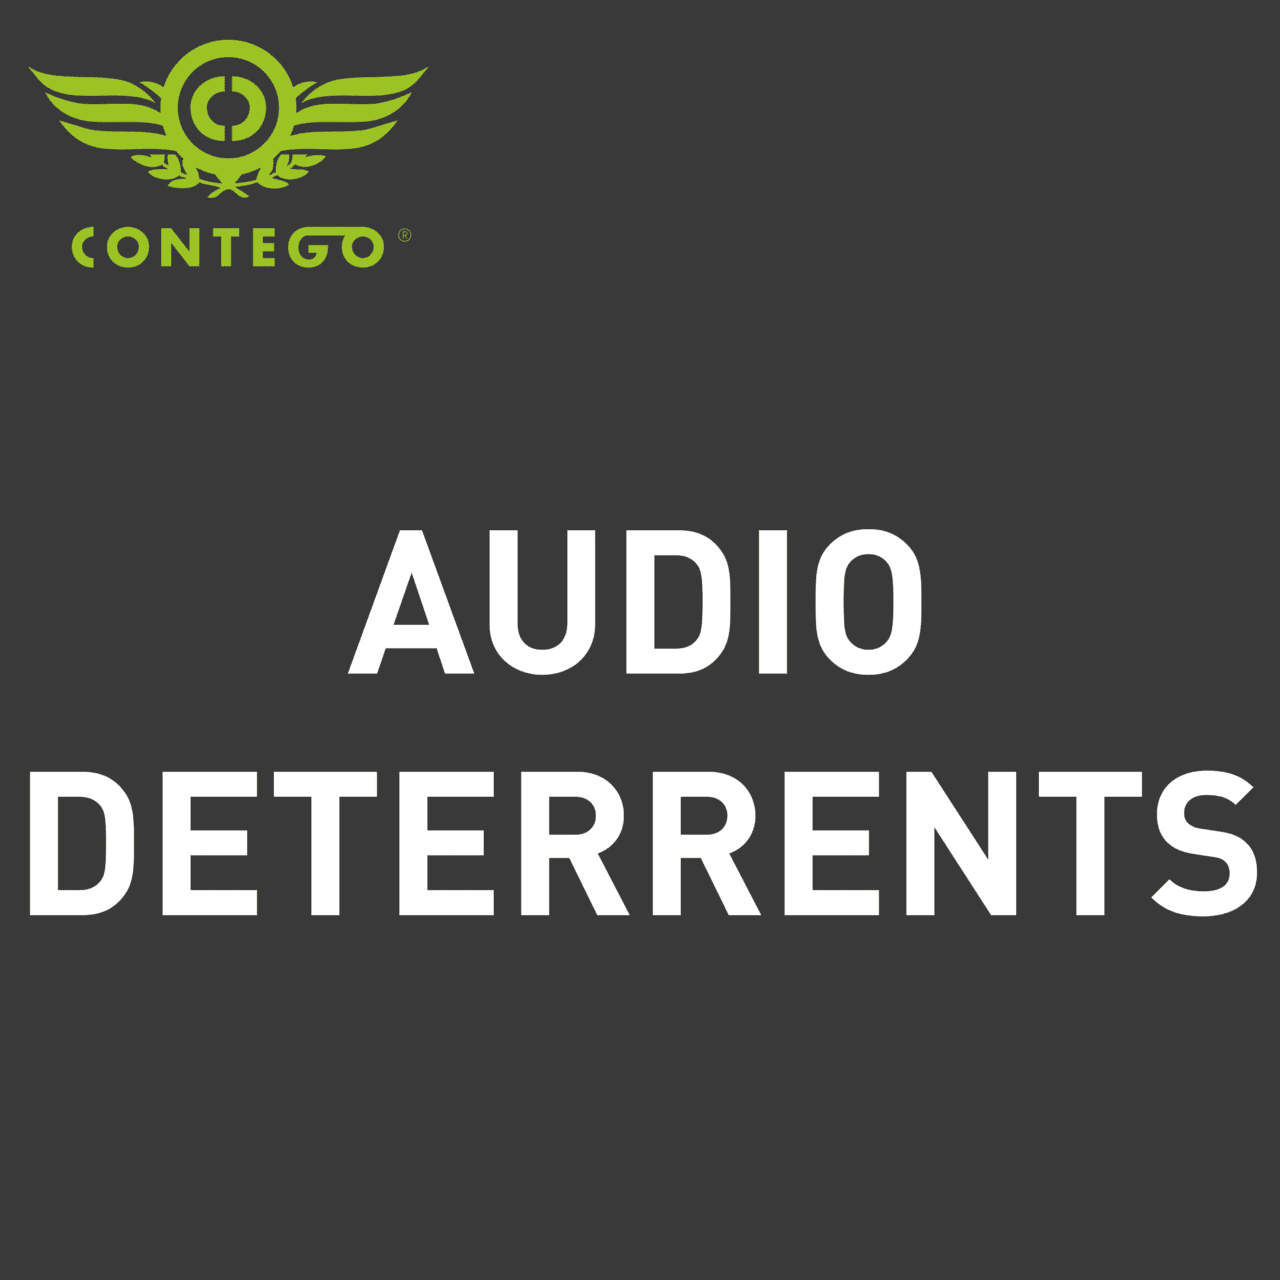 Audio deterrents